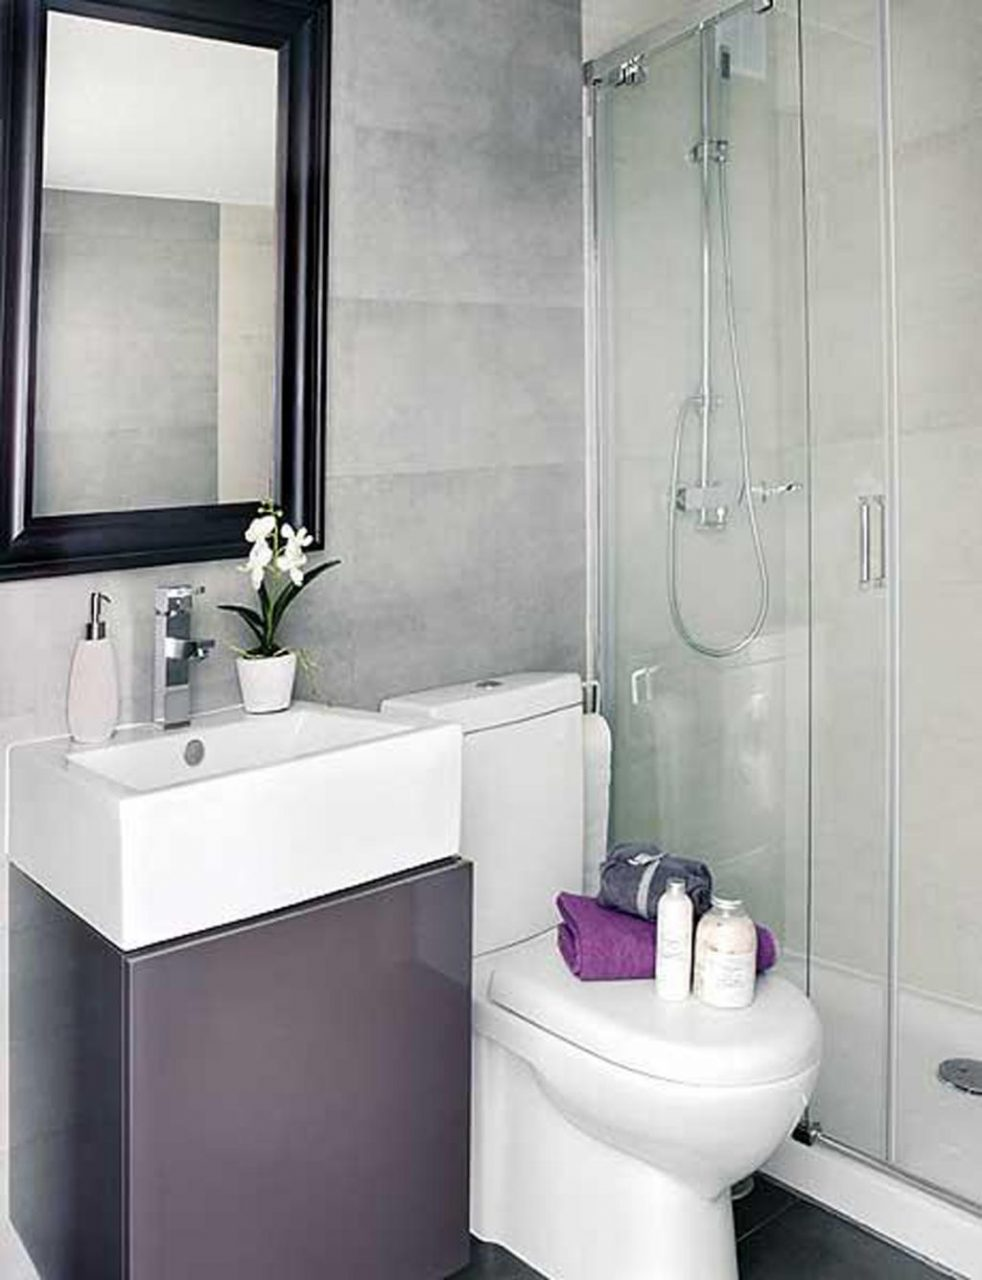 Pin Houzz Club On Home Design Pinterest Bathroom Design Small